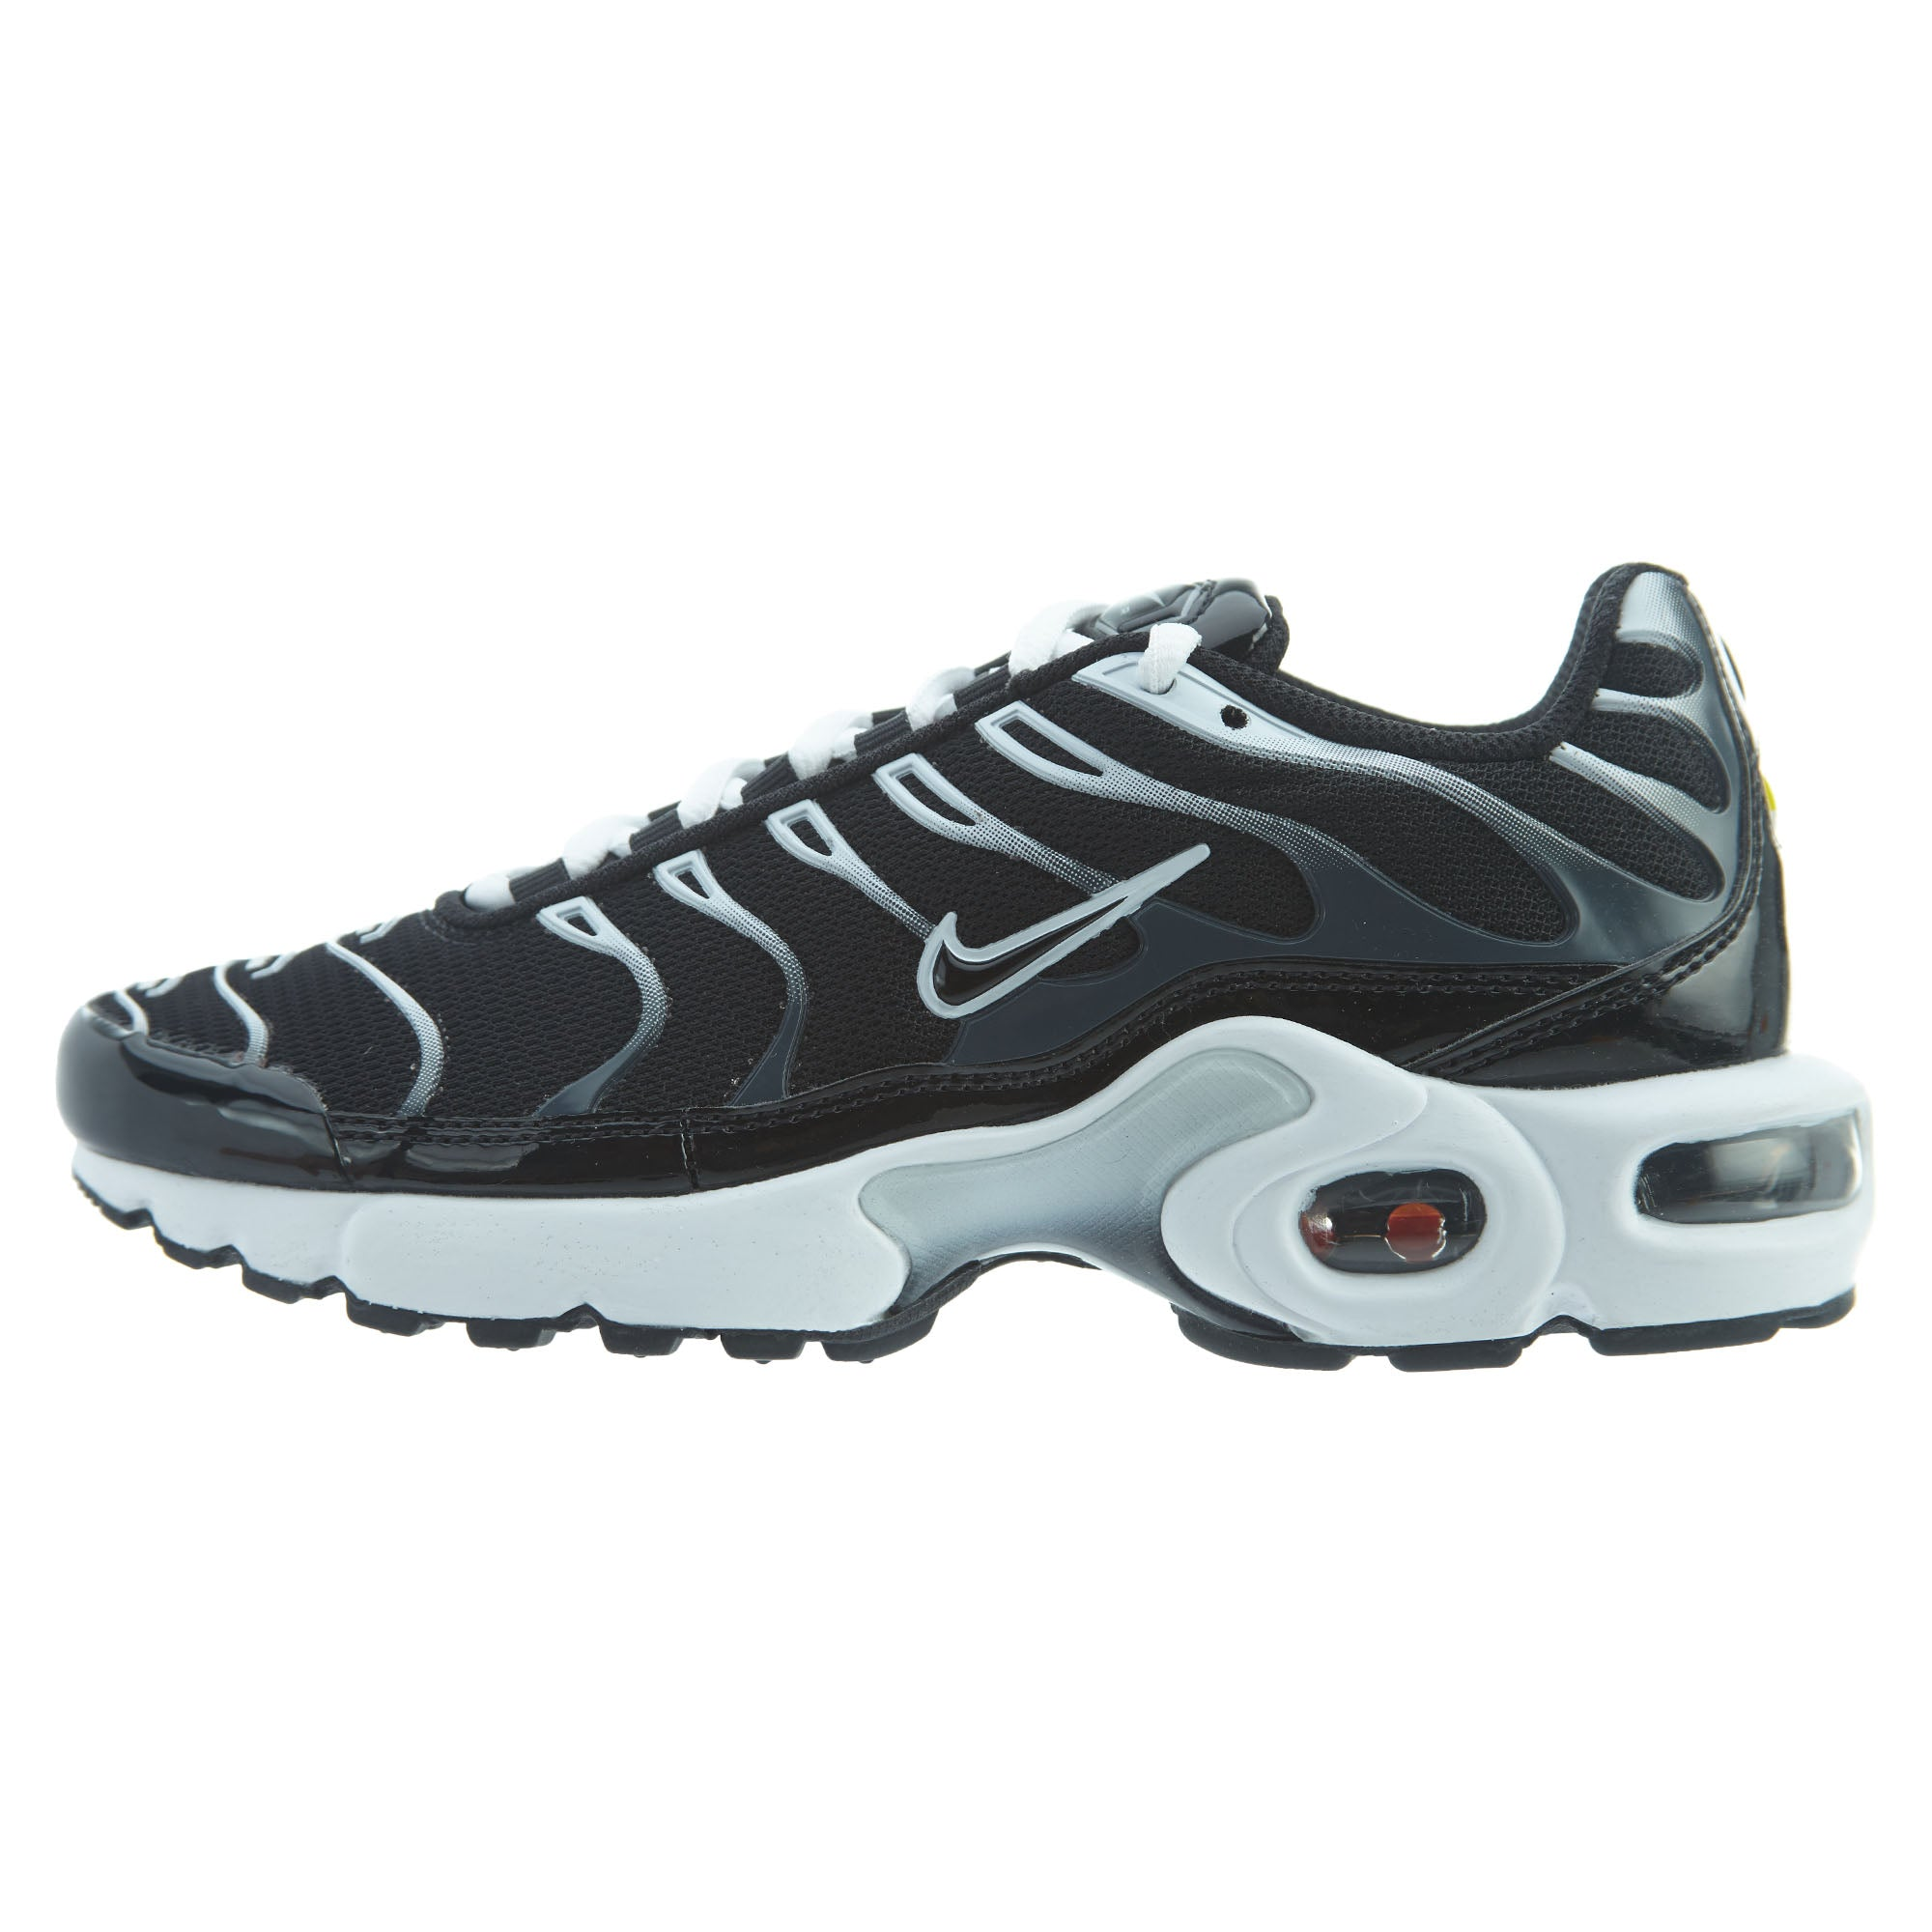 15297709fb Nike Air Max Plus Big Kids Style : Ar1852-006 – Sneaker Experts